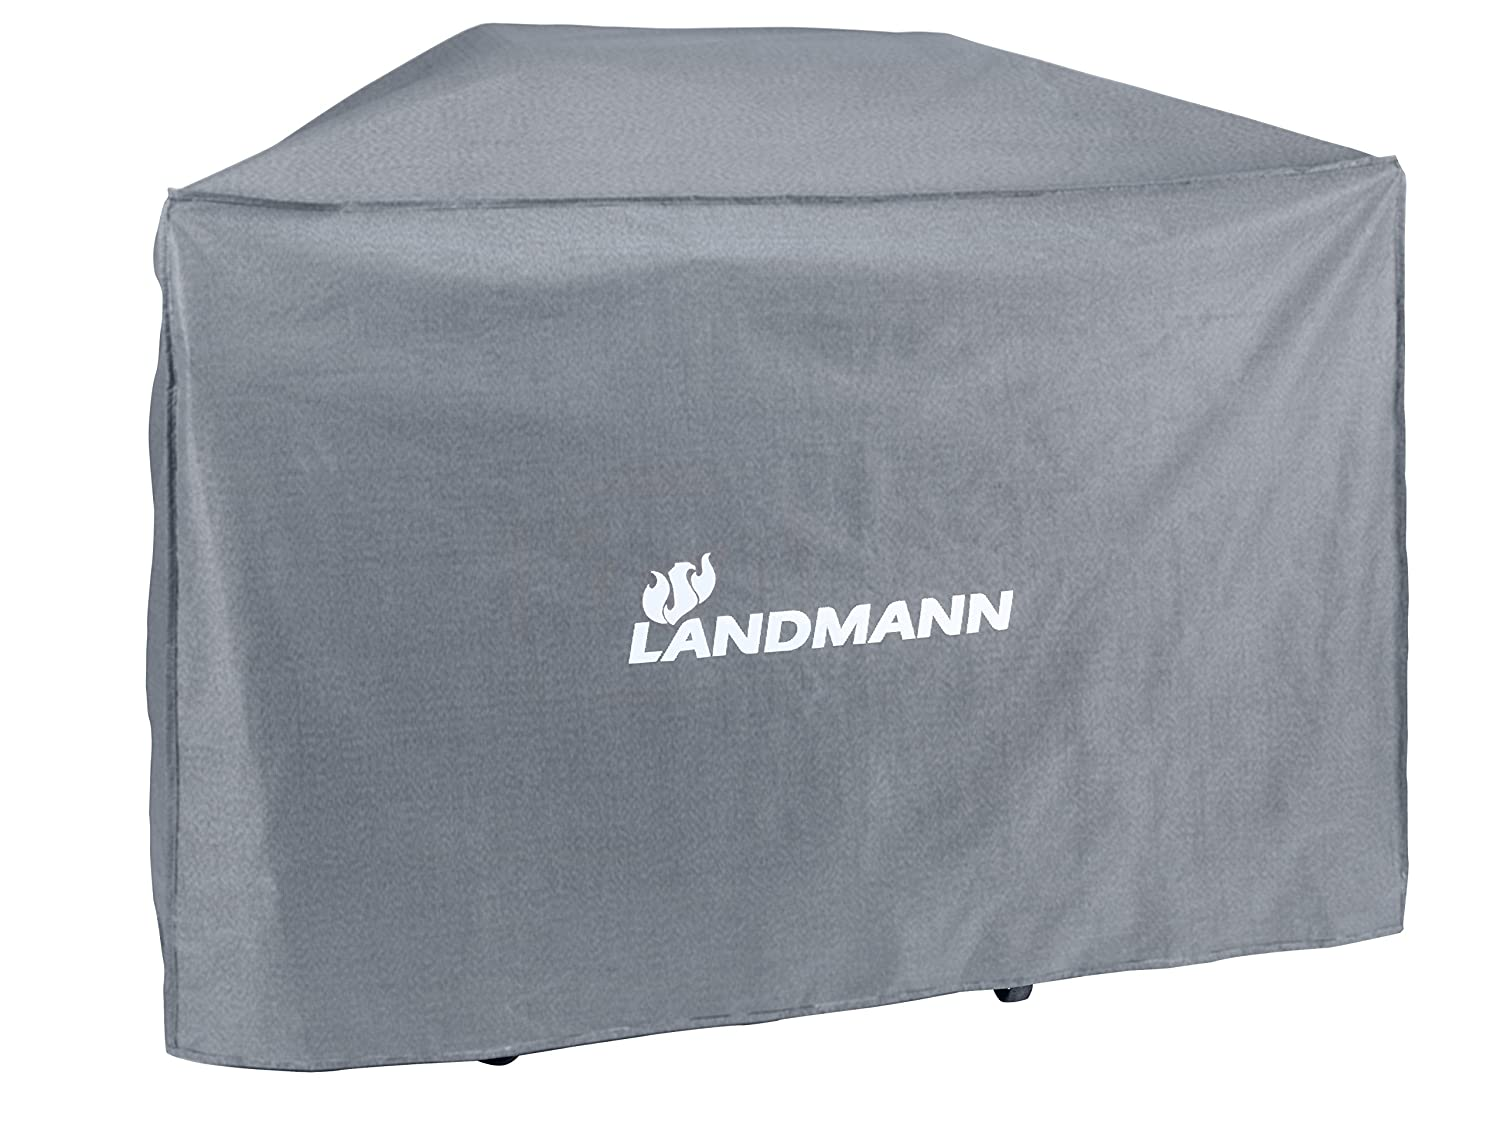 Landmann 15707 60 x 145 x 120 cm Premium Barbecue Cover - Grey